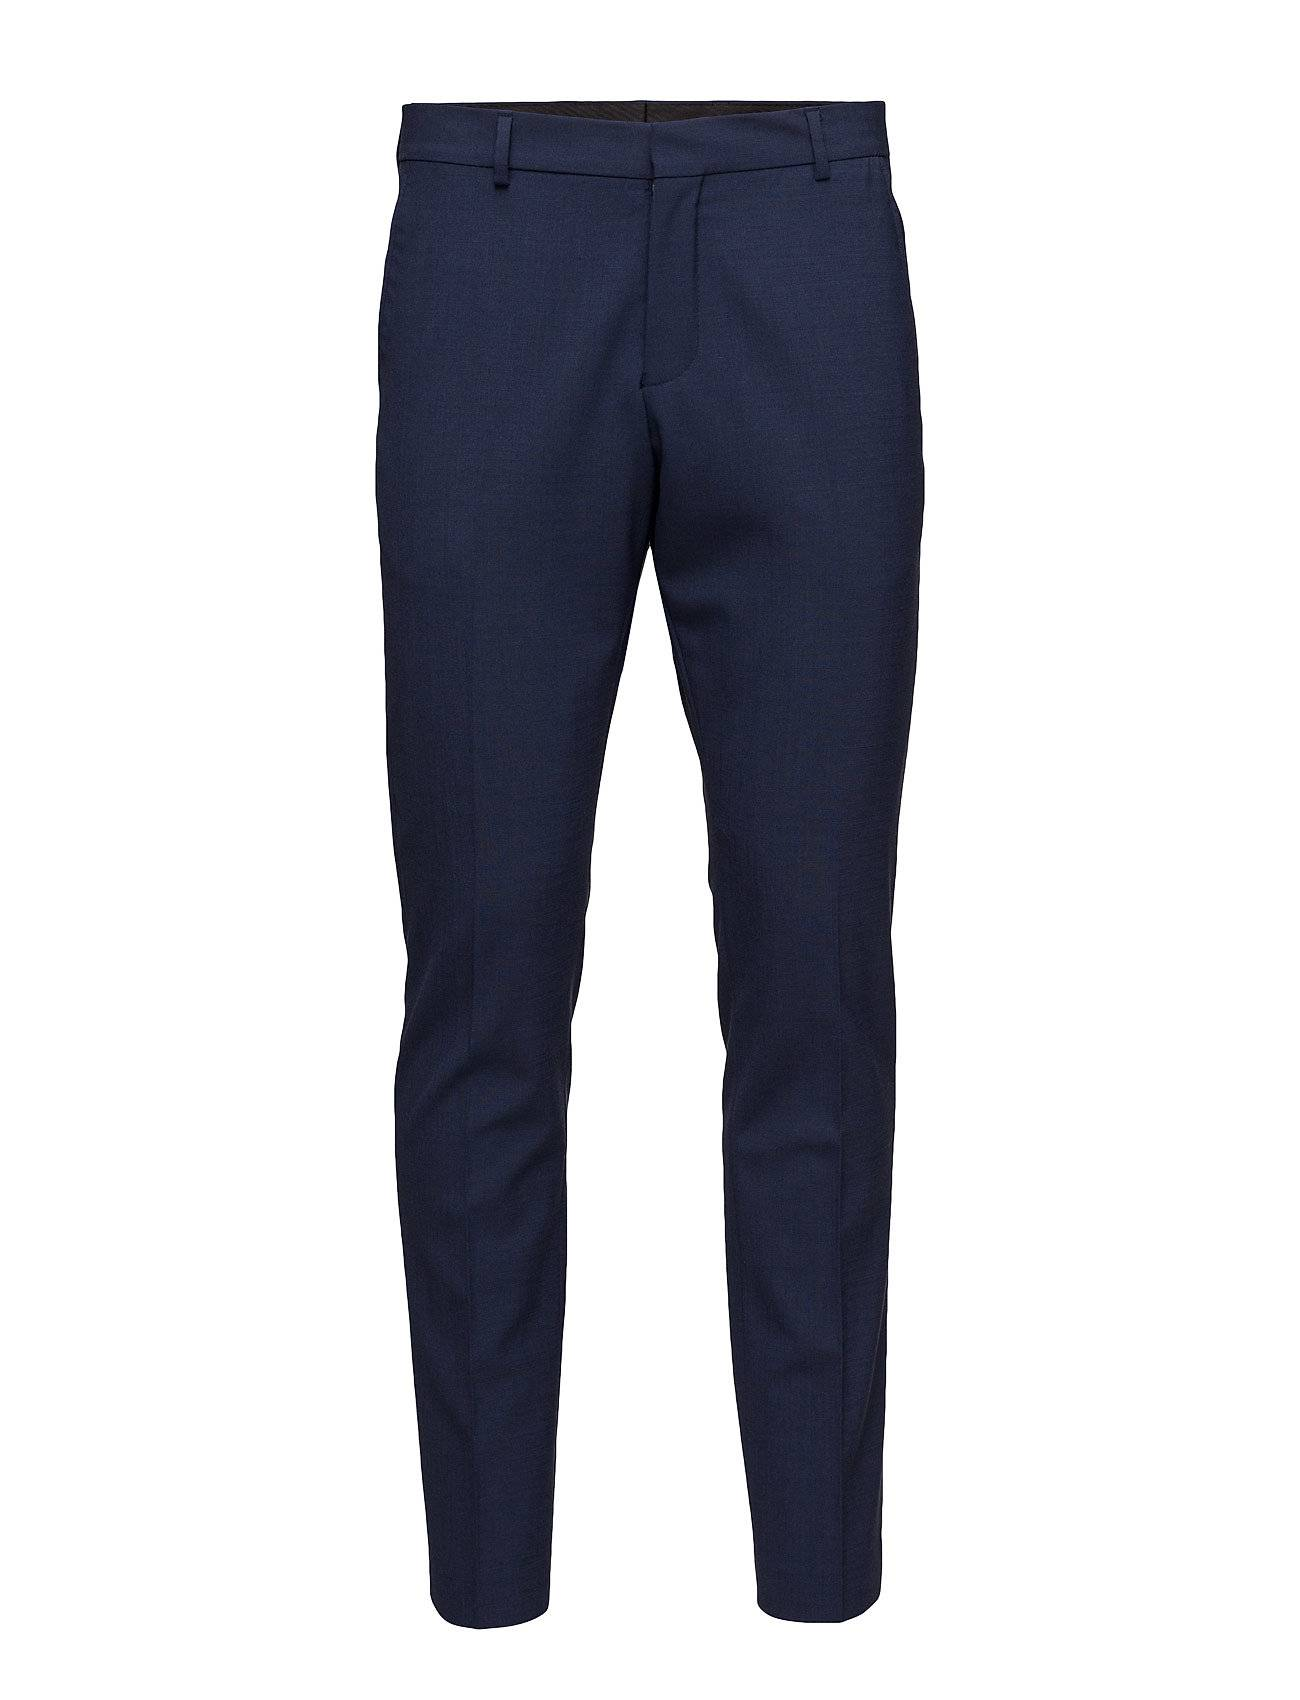 Selected Homme Shdnewone-Mylodon2 M Blue Trs Noos